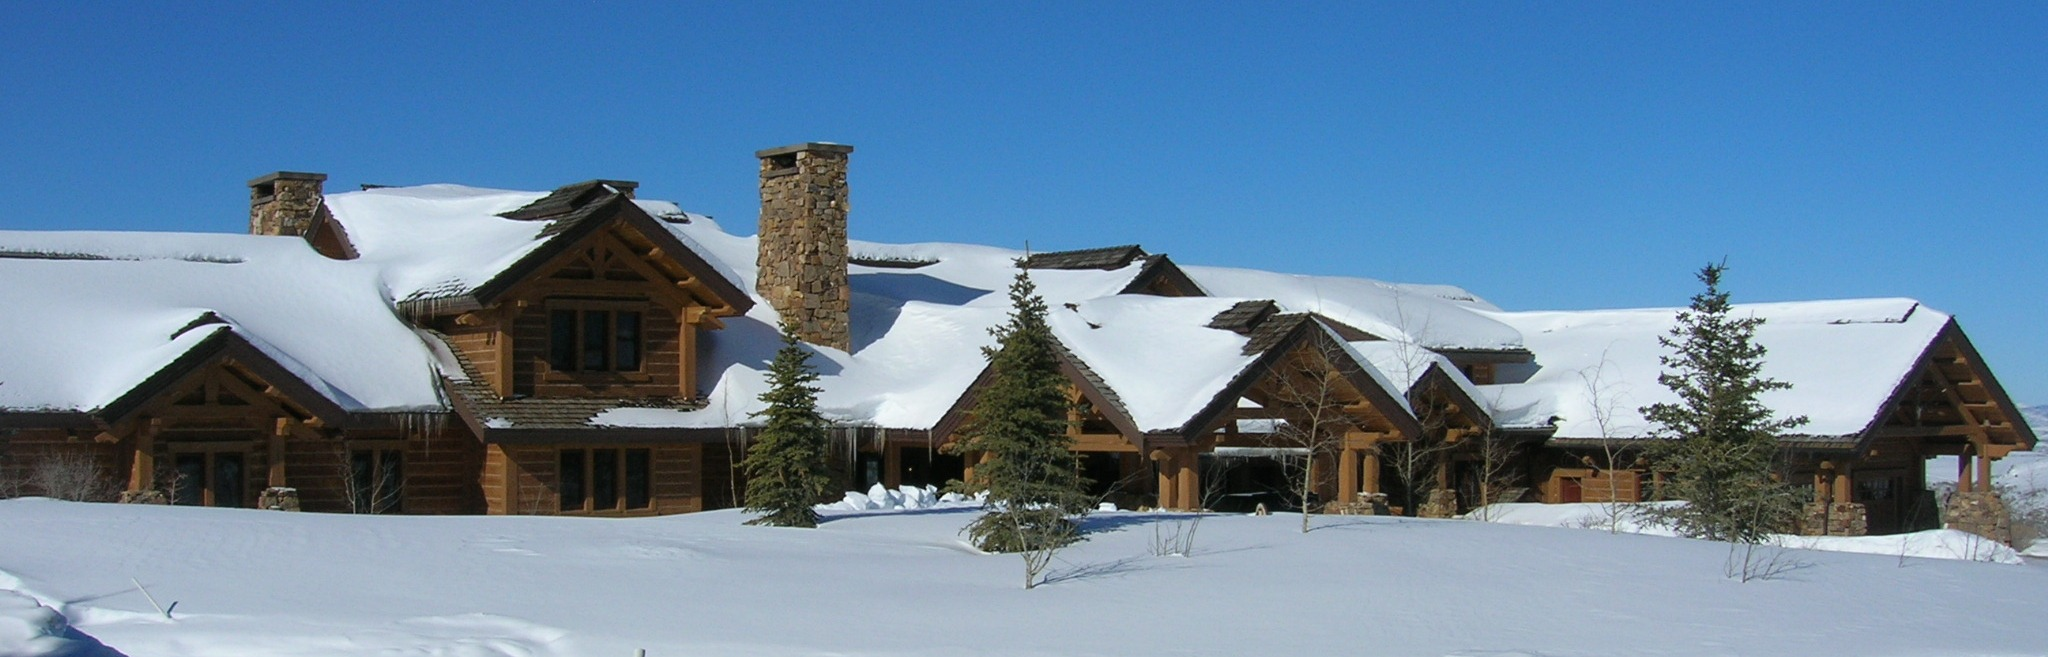 Wolf Creek Ranch Estate - Park City, UT